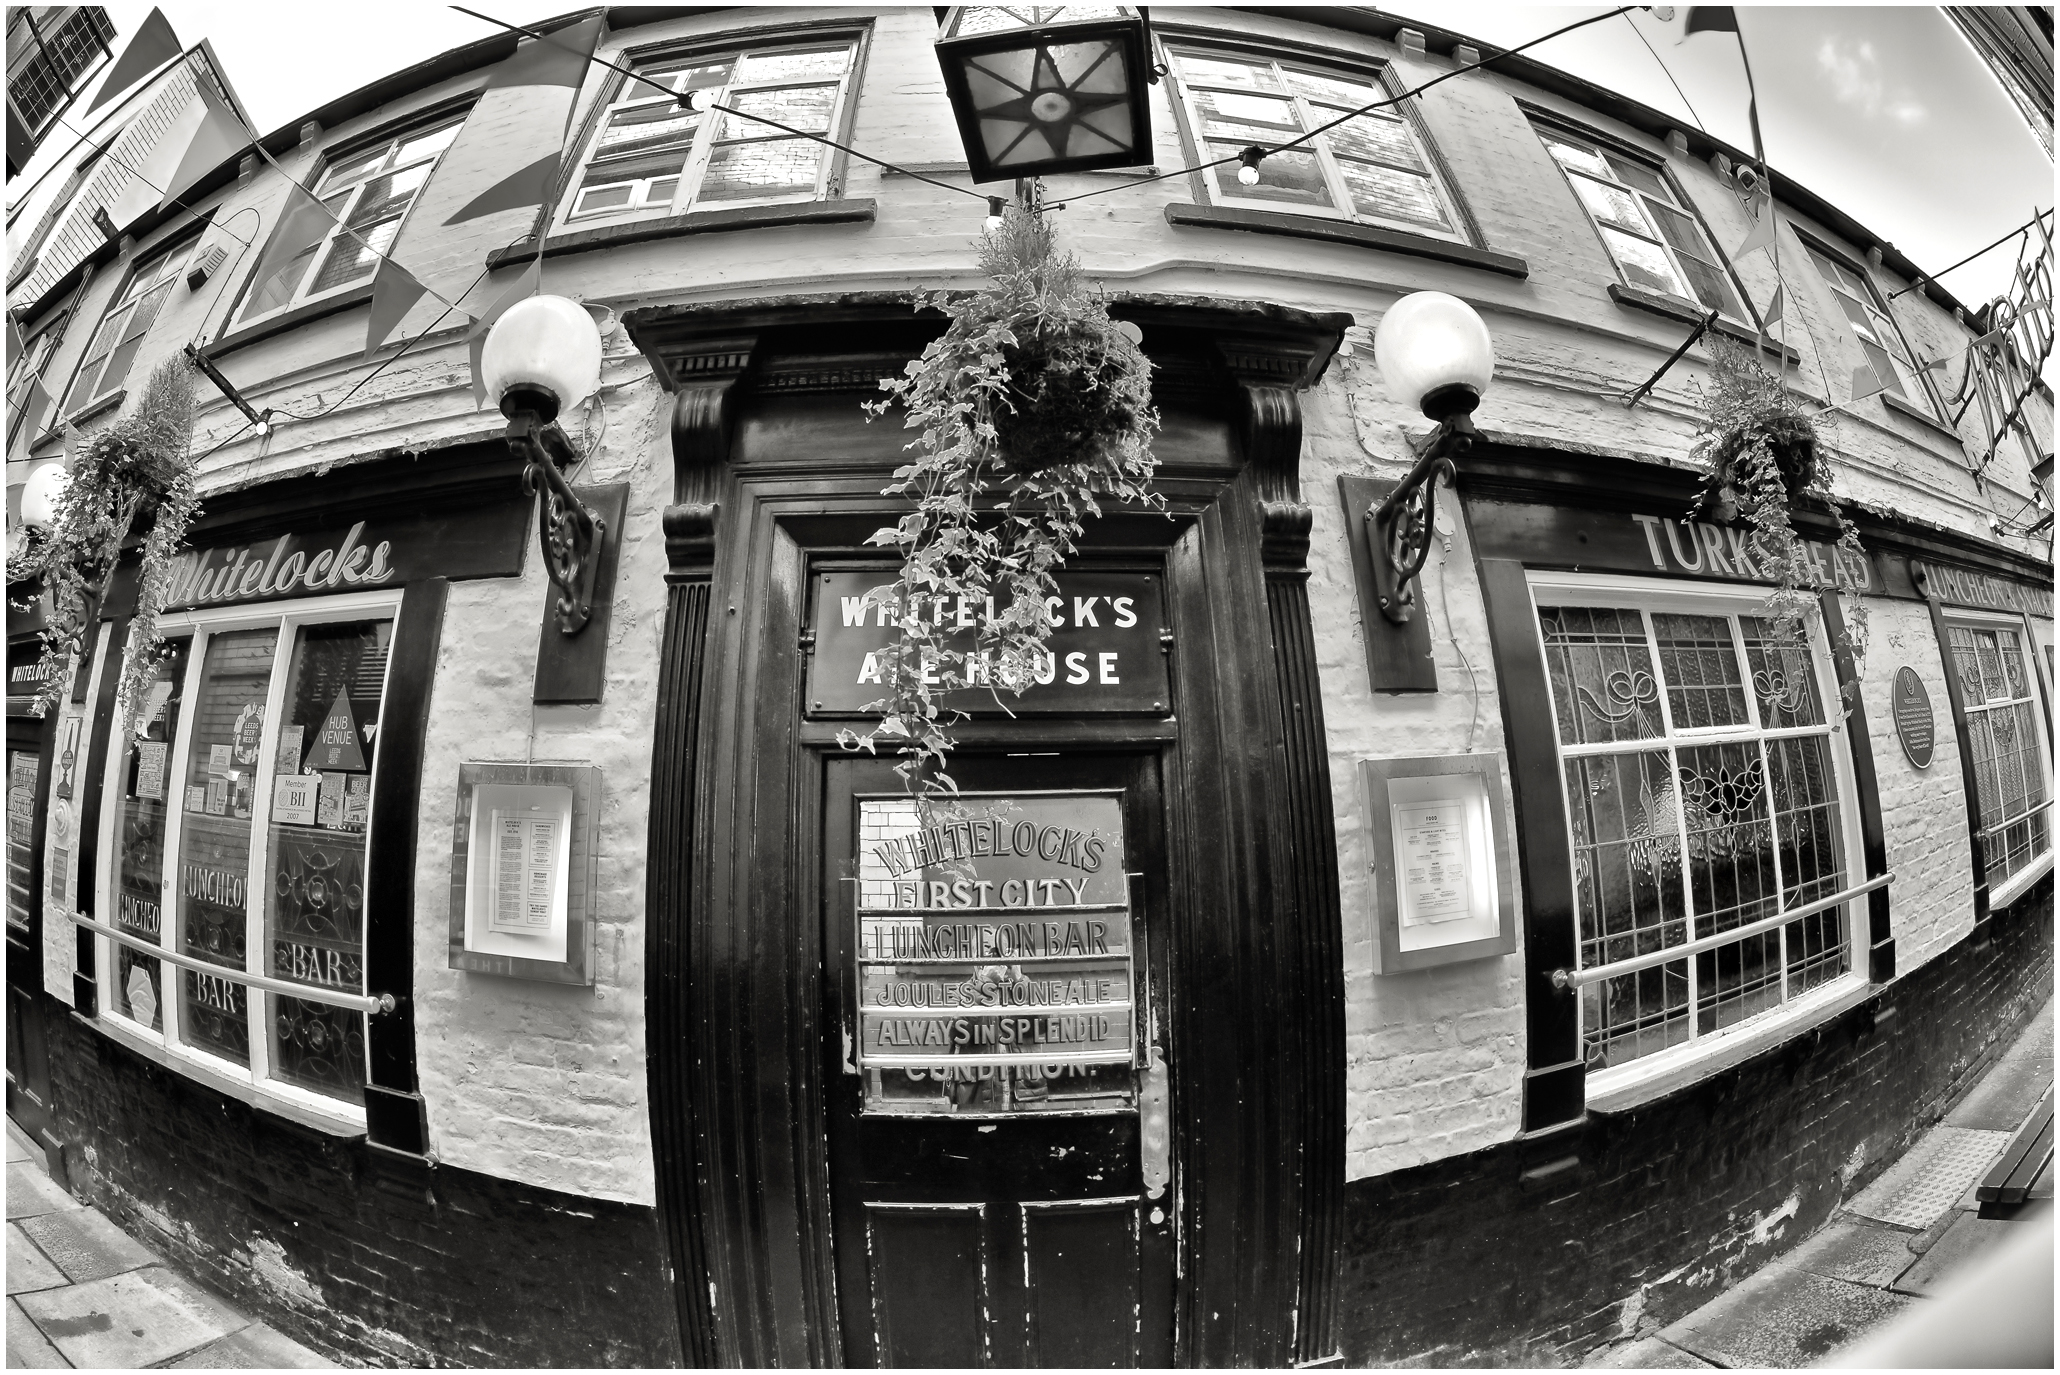 Whitelock's Ale House